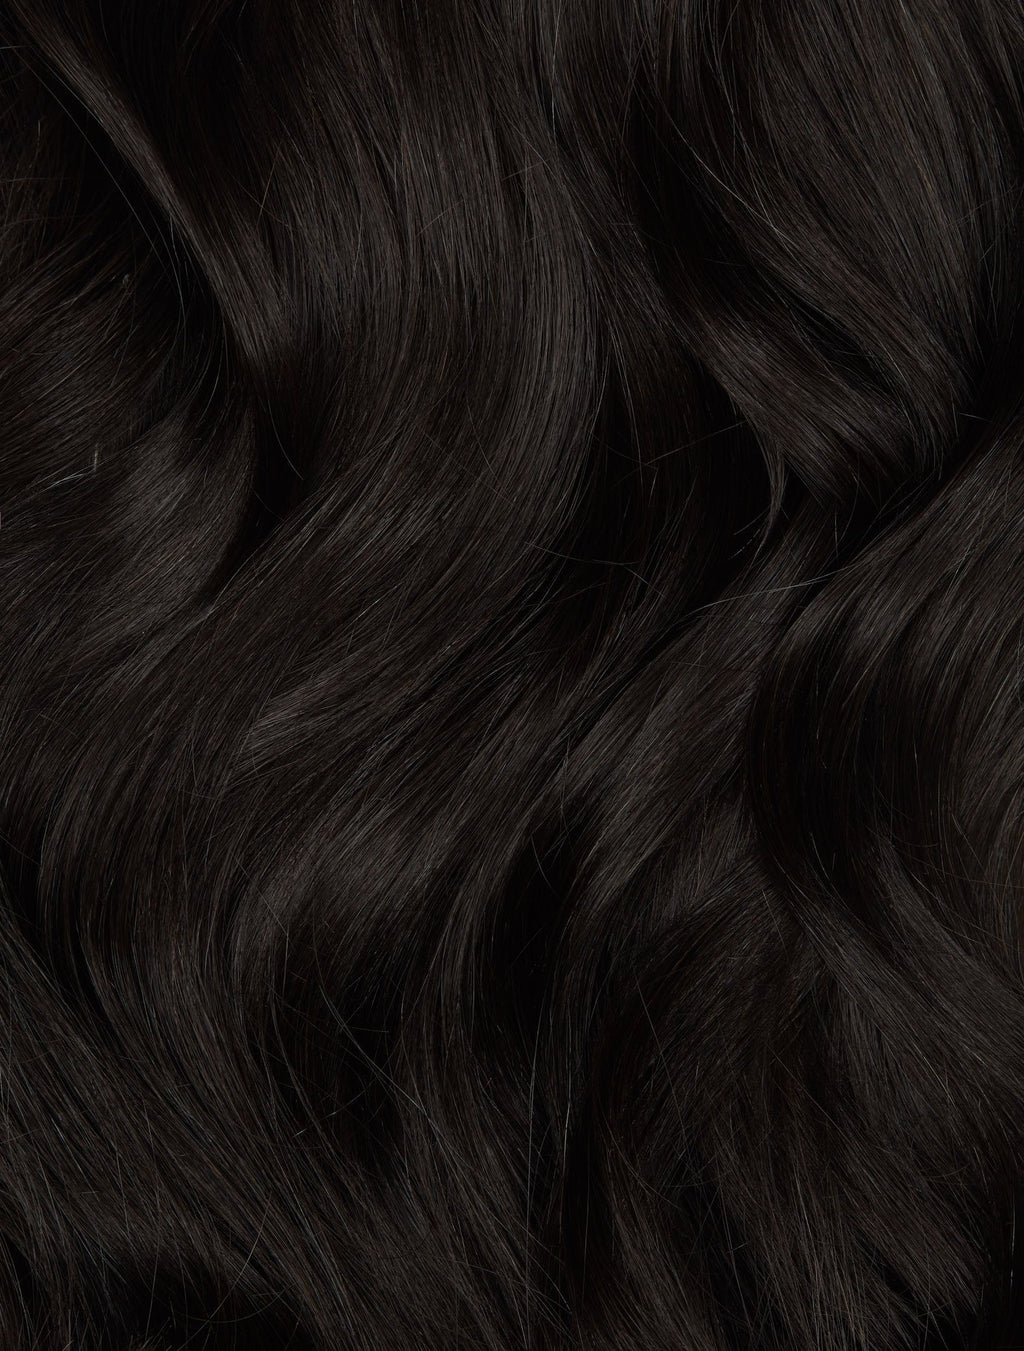 Off Black (1B) 100g Weft - BOMBAY HAIR